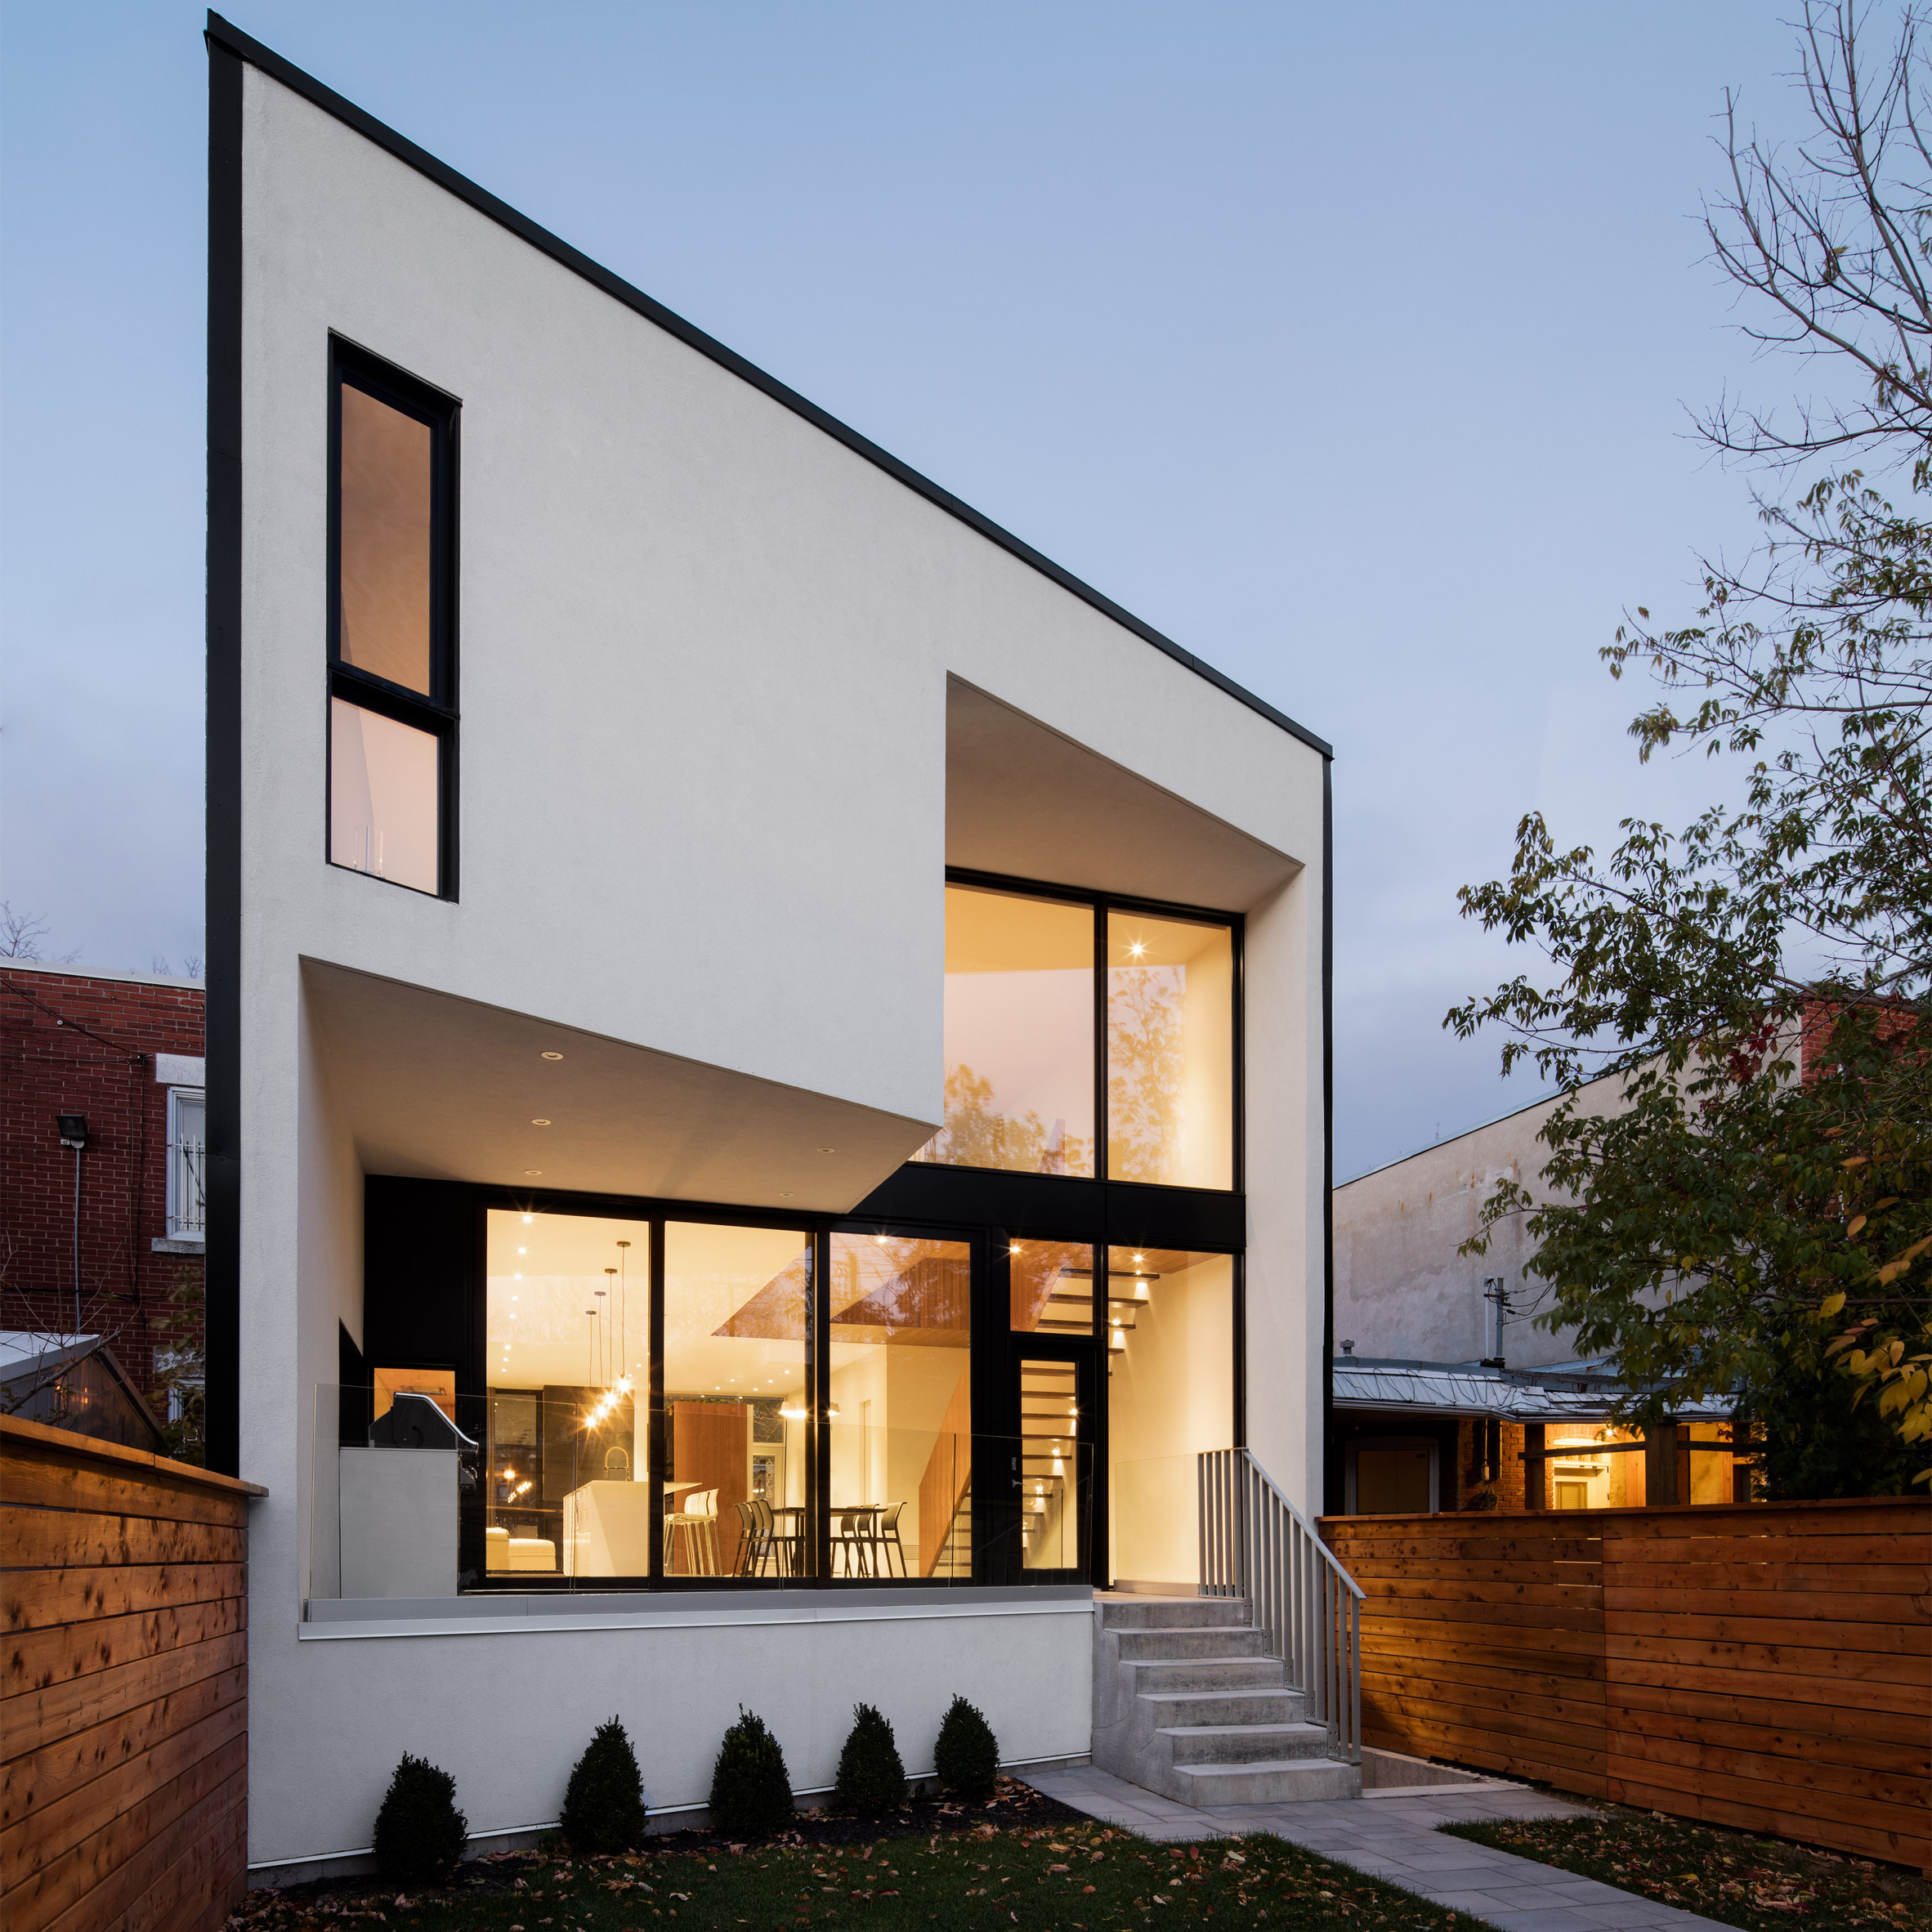 Architecture Microclimat builds minimal house in traditional Montreal  neighbourhood